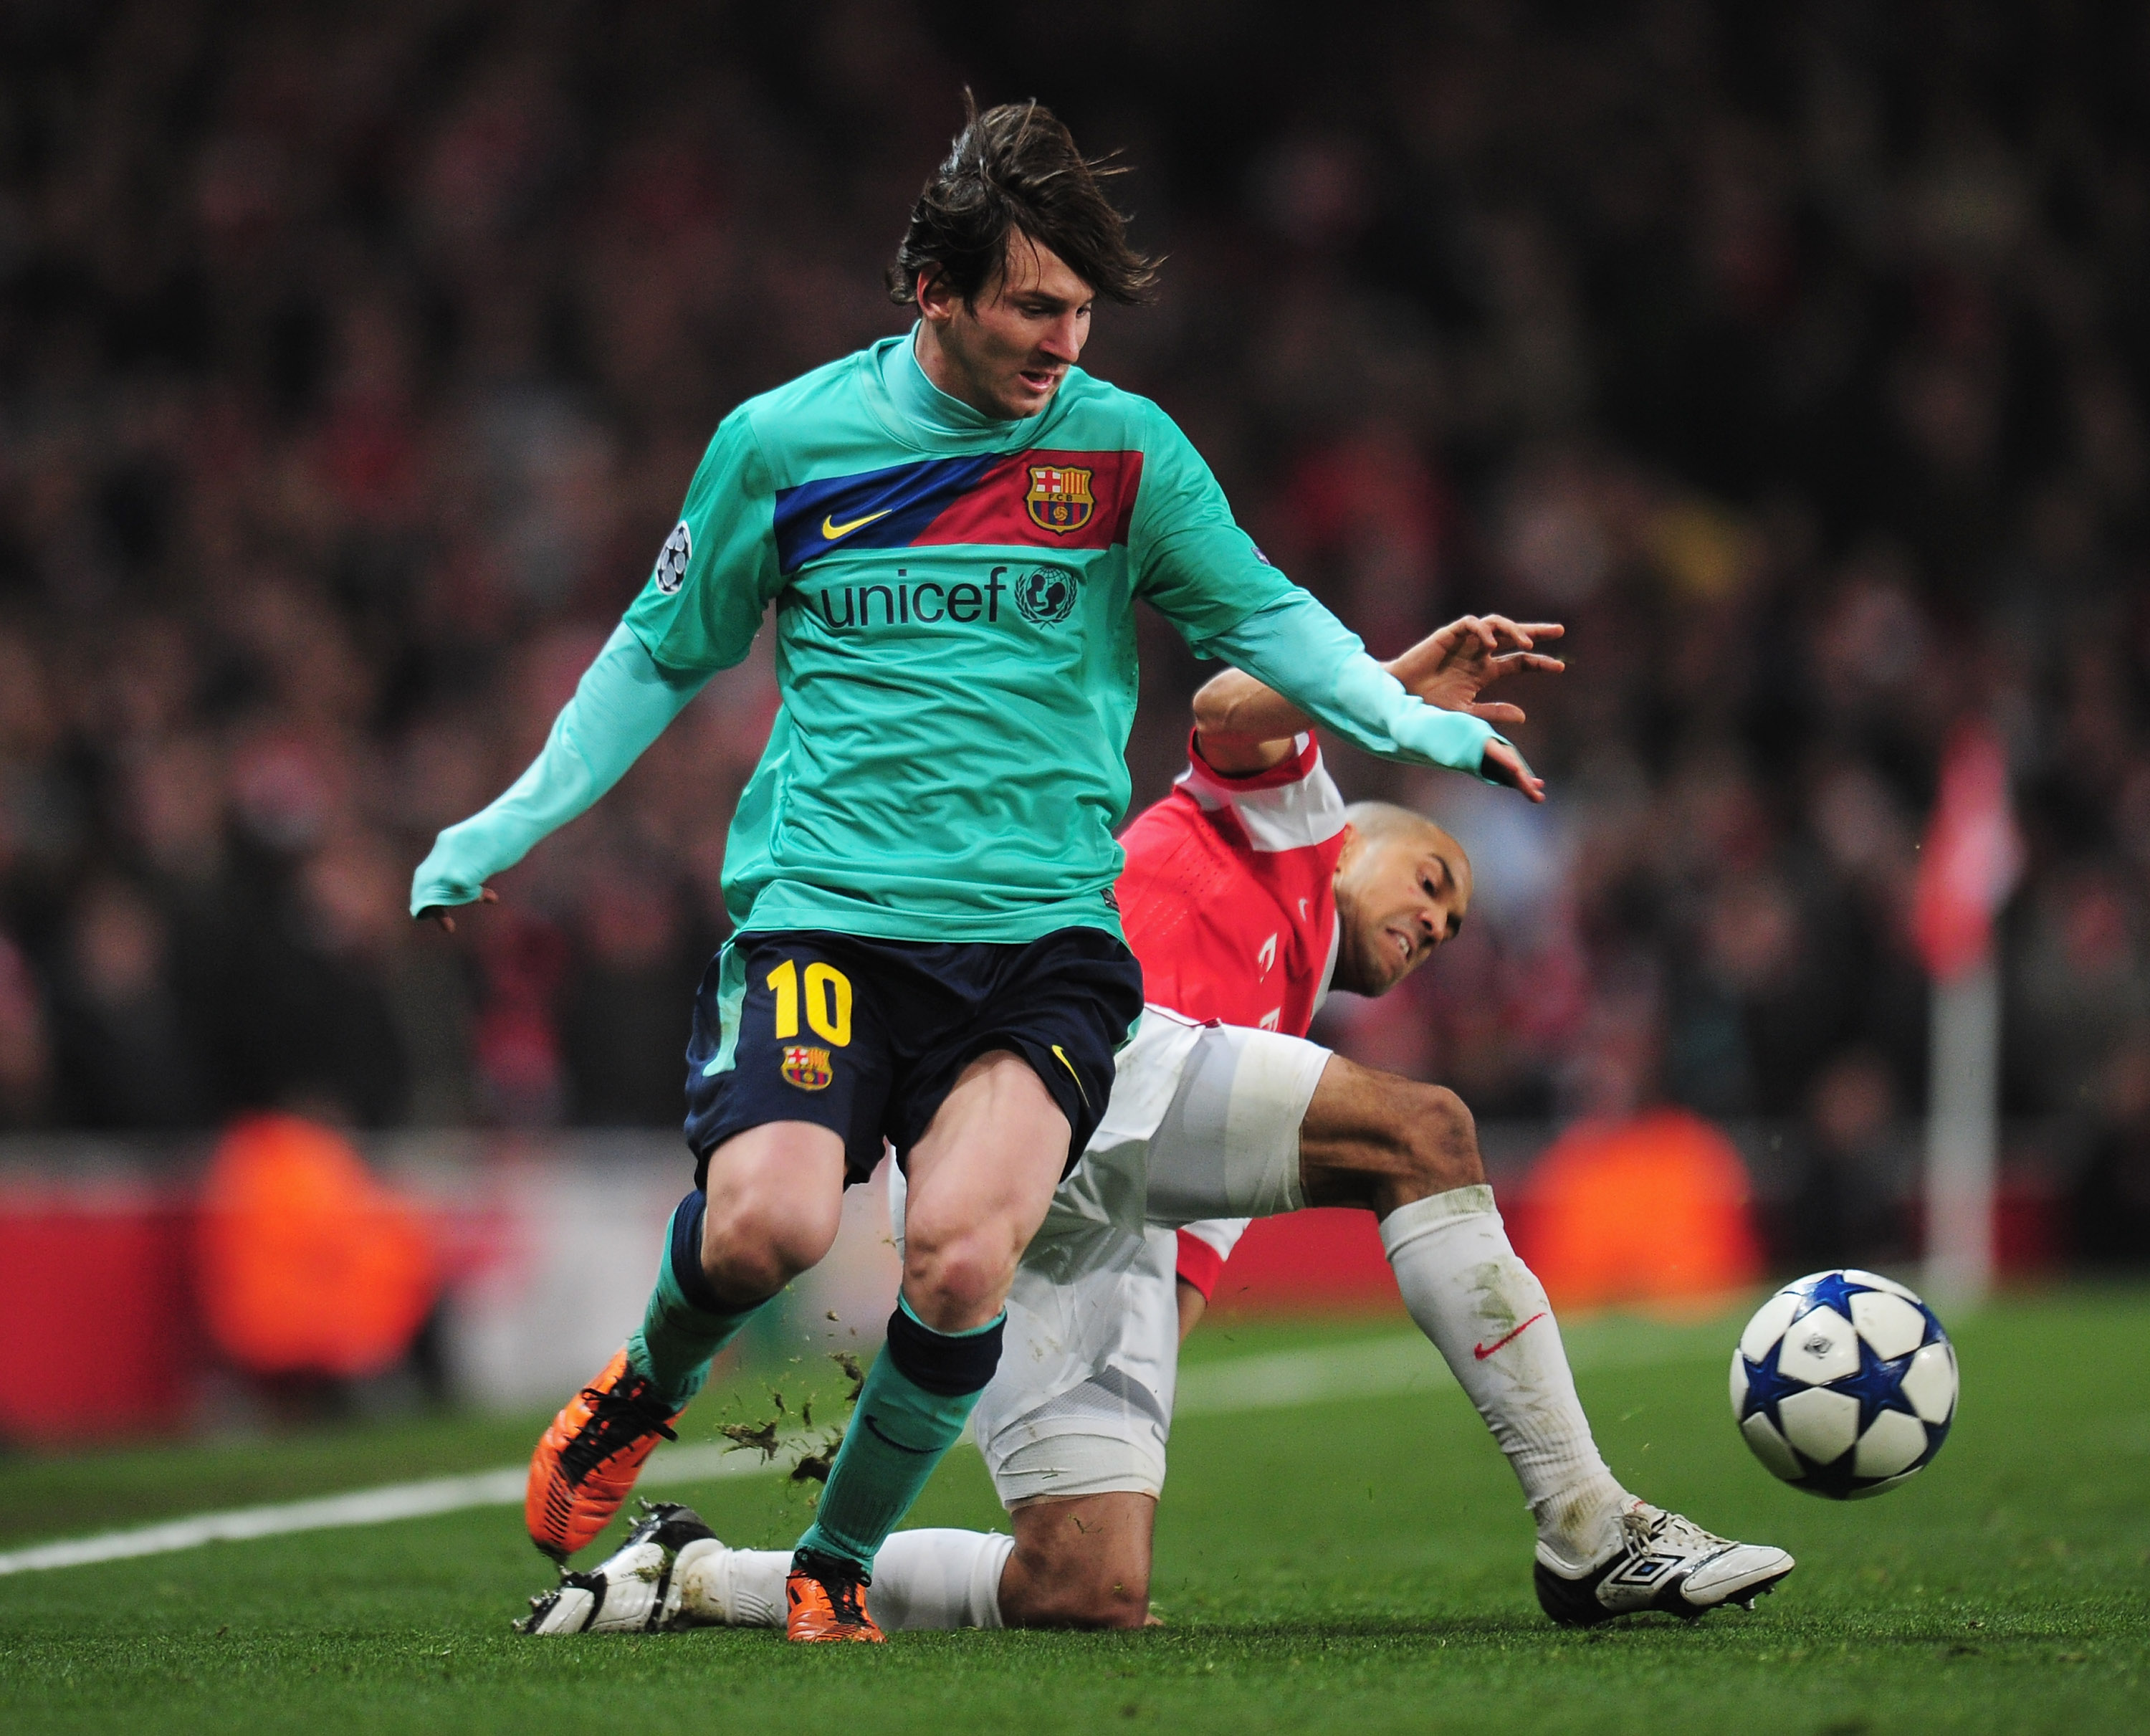 LONDON, ENGLAND - FEBRUARY 16:  Gael Clichy of Arsenal challenges Lionel Messi of Barcelona during the UEFA Champions League round of 16 first leg match between Arsenal and Barcelona at the Emirates Stadium on February 16, 2011 in London, England.  (Photo